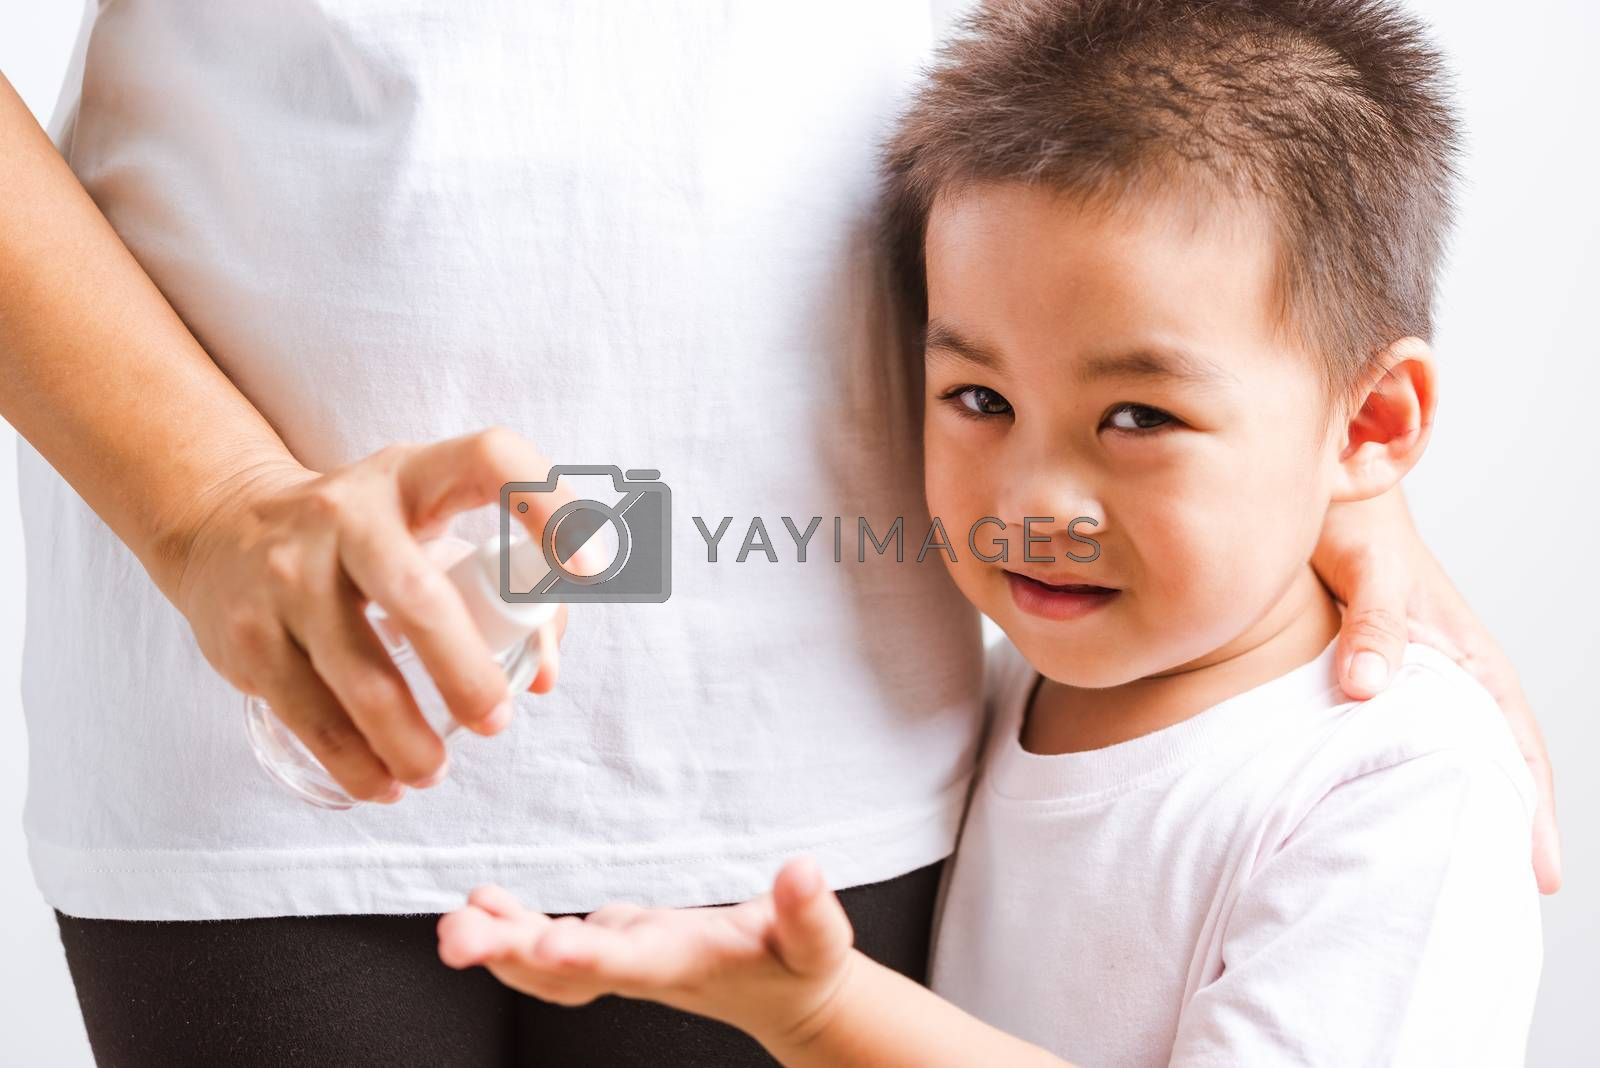 Closeup Asian Mother applying bottle pump dispenser sanitizer alcohol gel cleaning washing hands little child boy COVID-19 or coronavirus protection concept, isolated white background with copy space